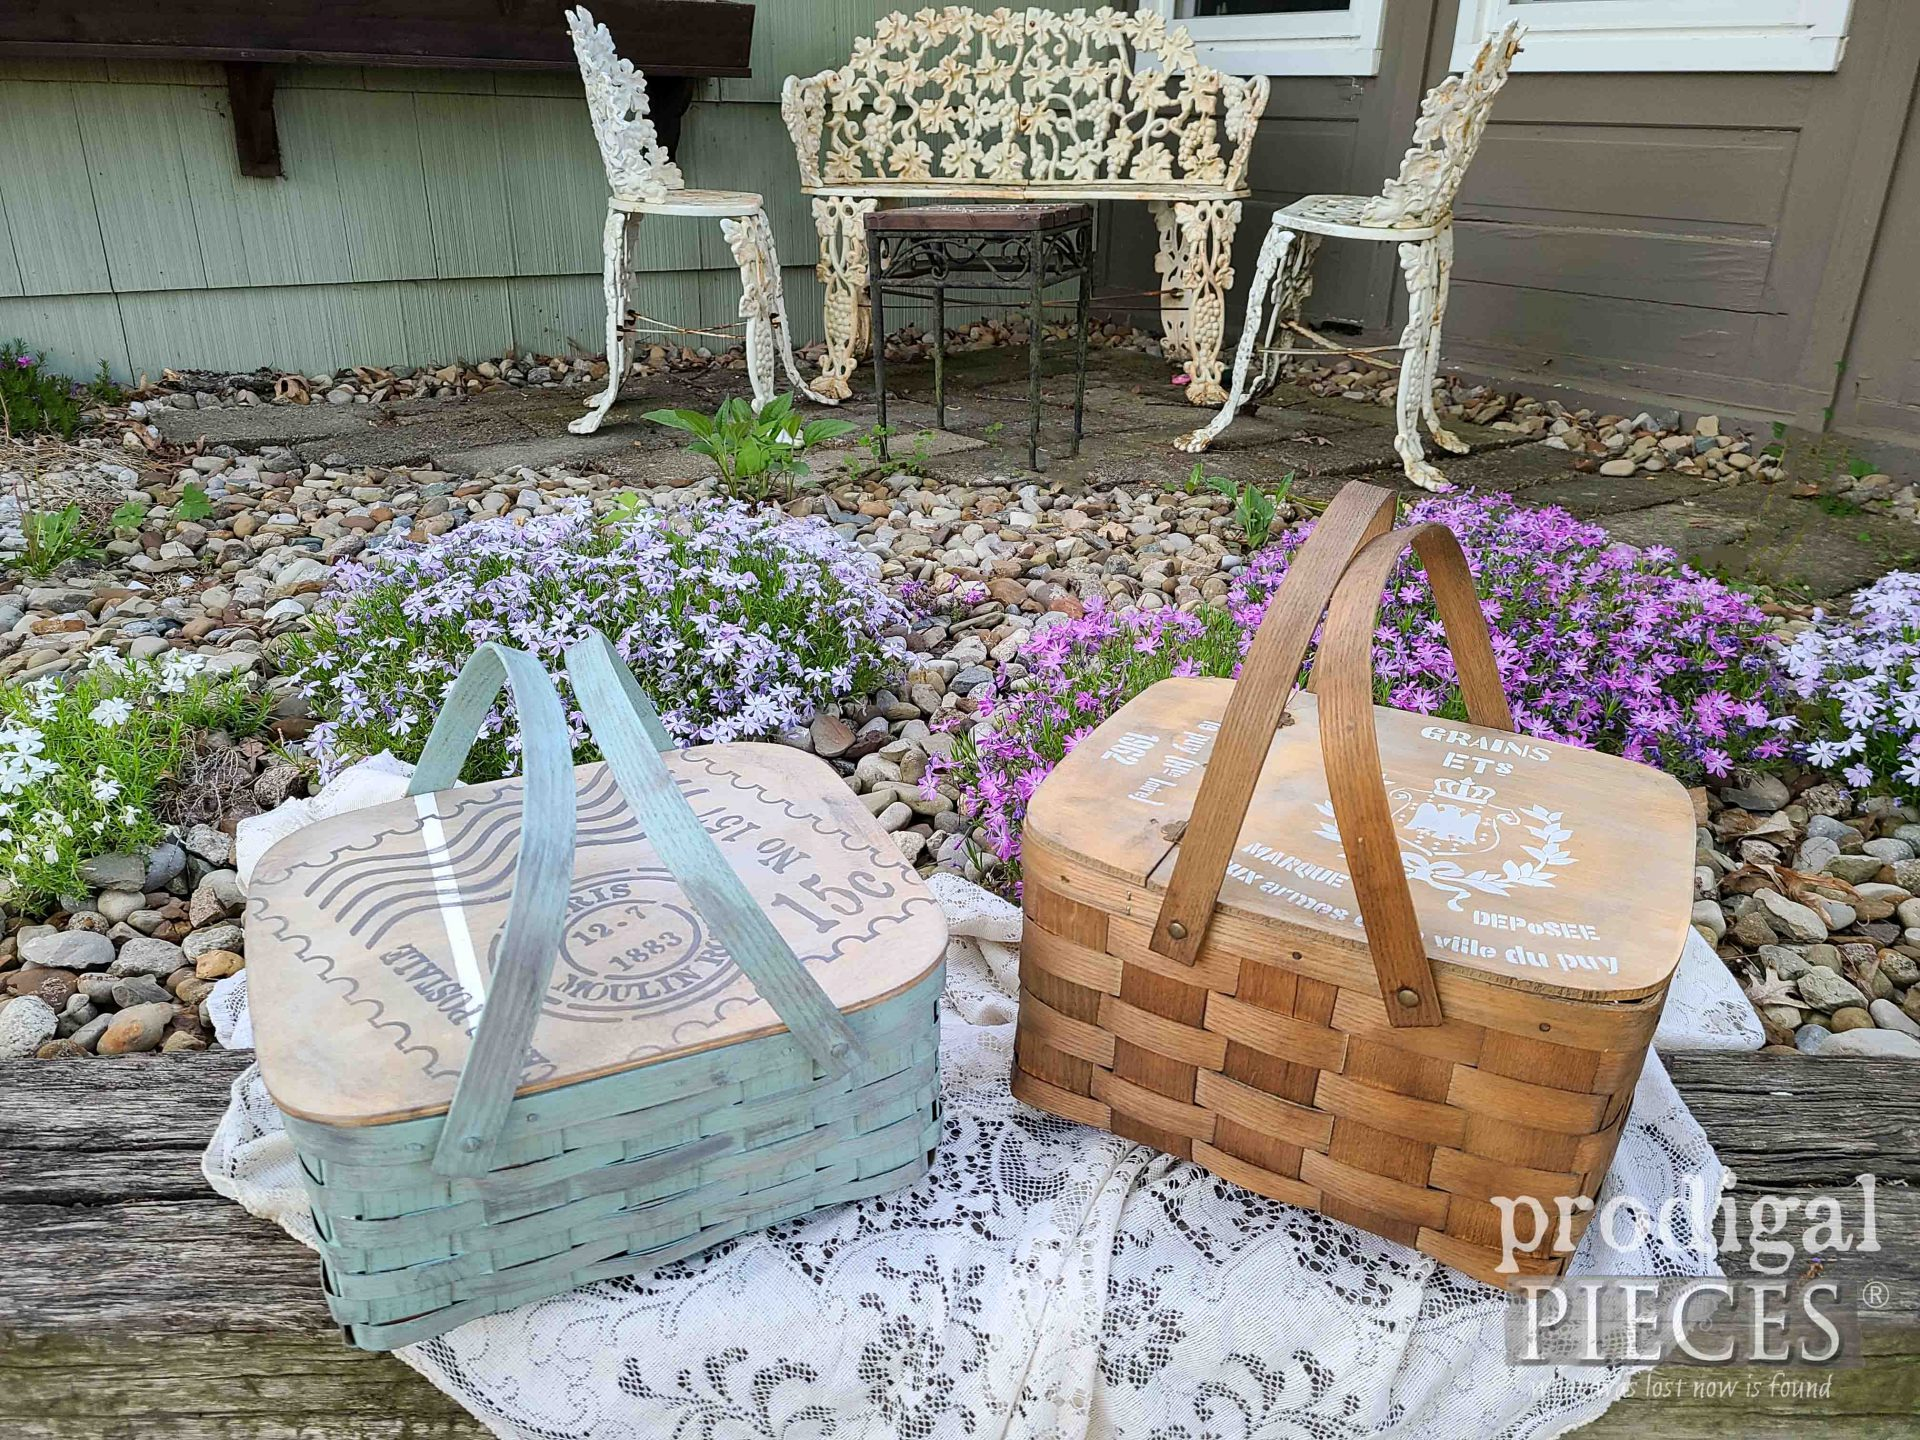 French Farmhouse Picnic Baskets Upcycled by Larissa of Prodigal Pieces | prodigalpieces.com #prodigalpieces #farmhouse #picnic #home